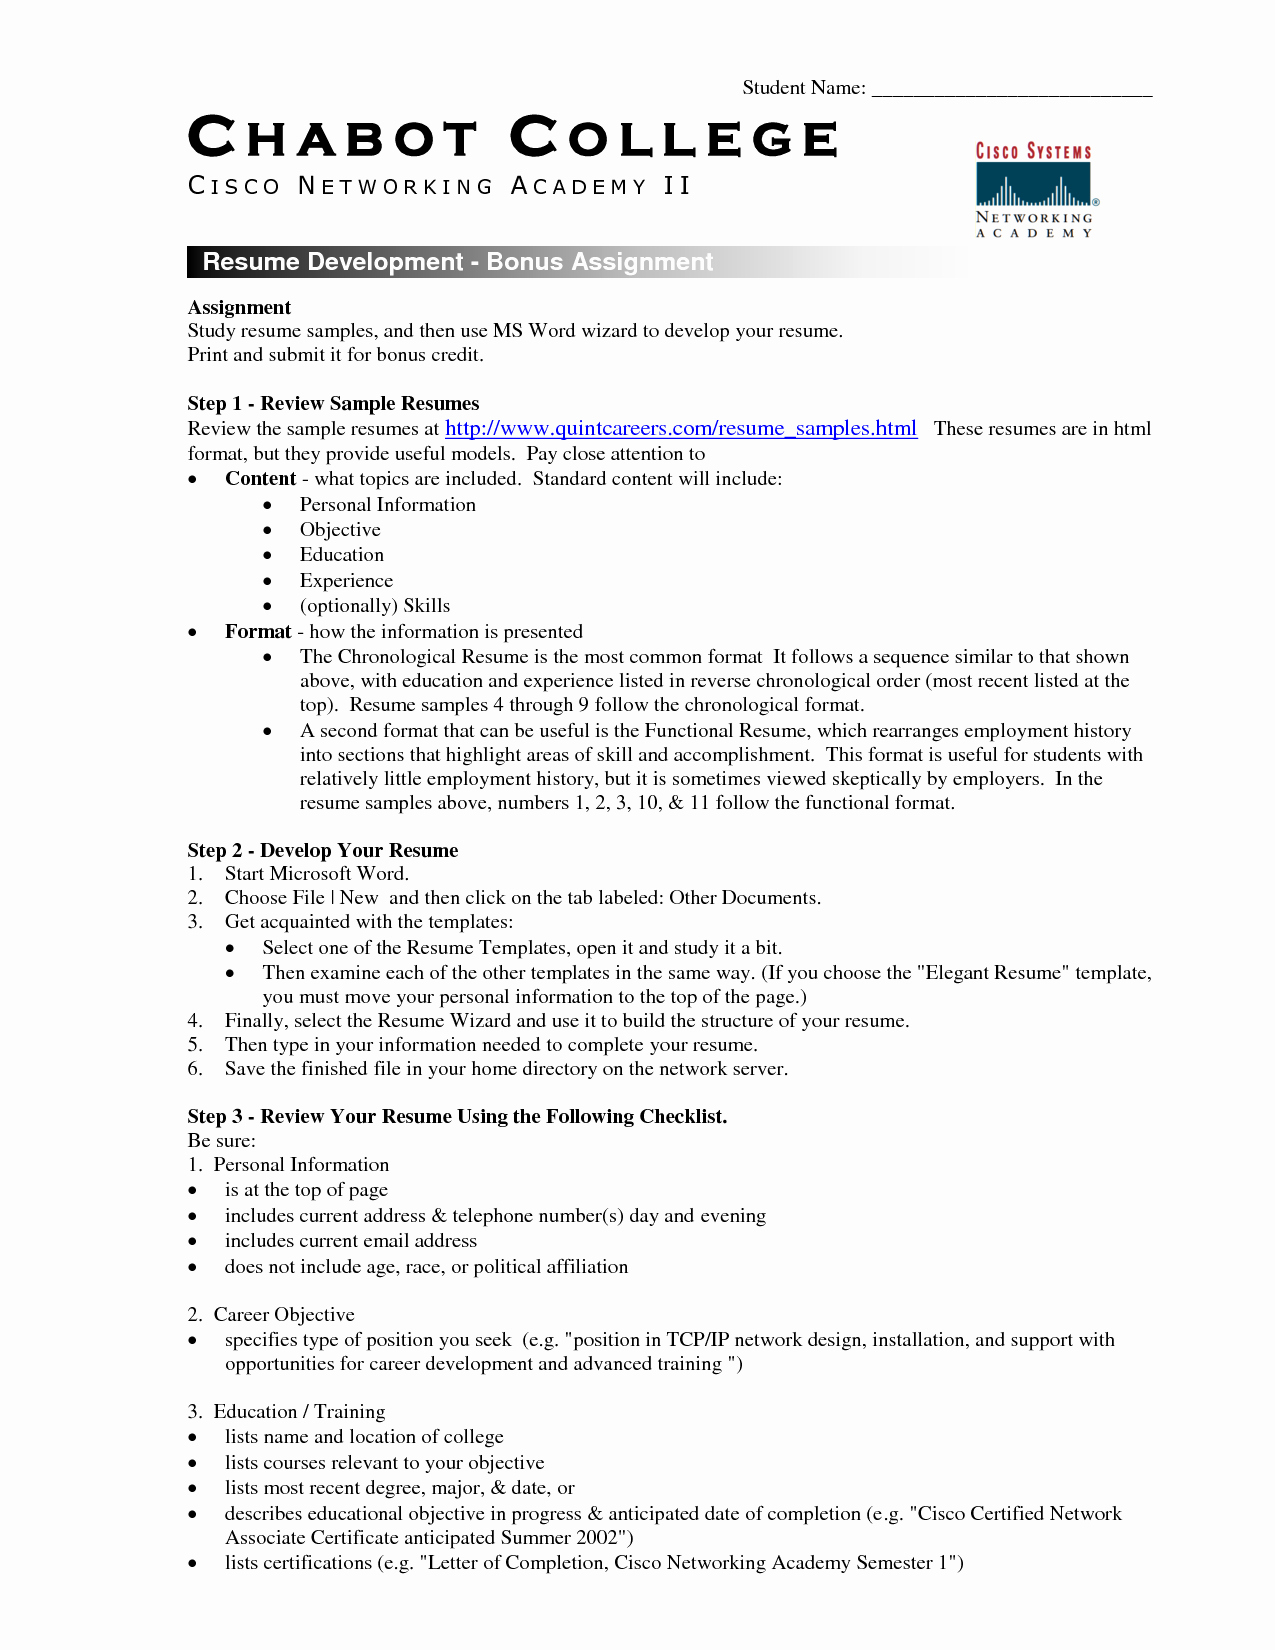 Free Student Resume Templates Microsoft Word – Vemquetem With College Student Resume Template Microsoft Word